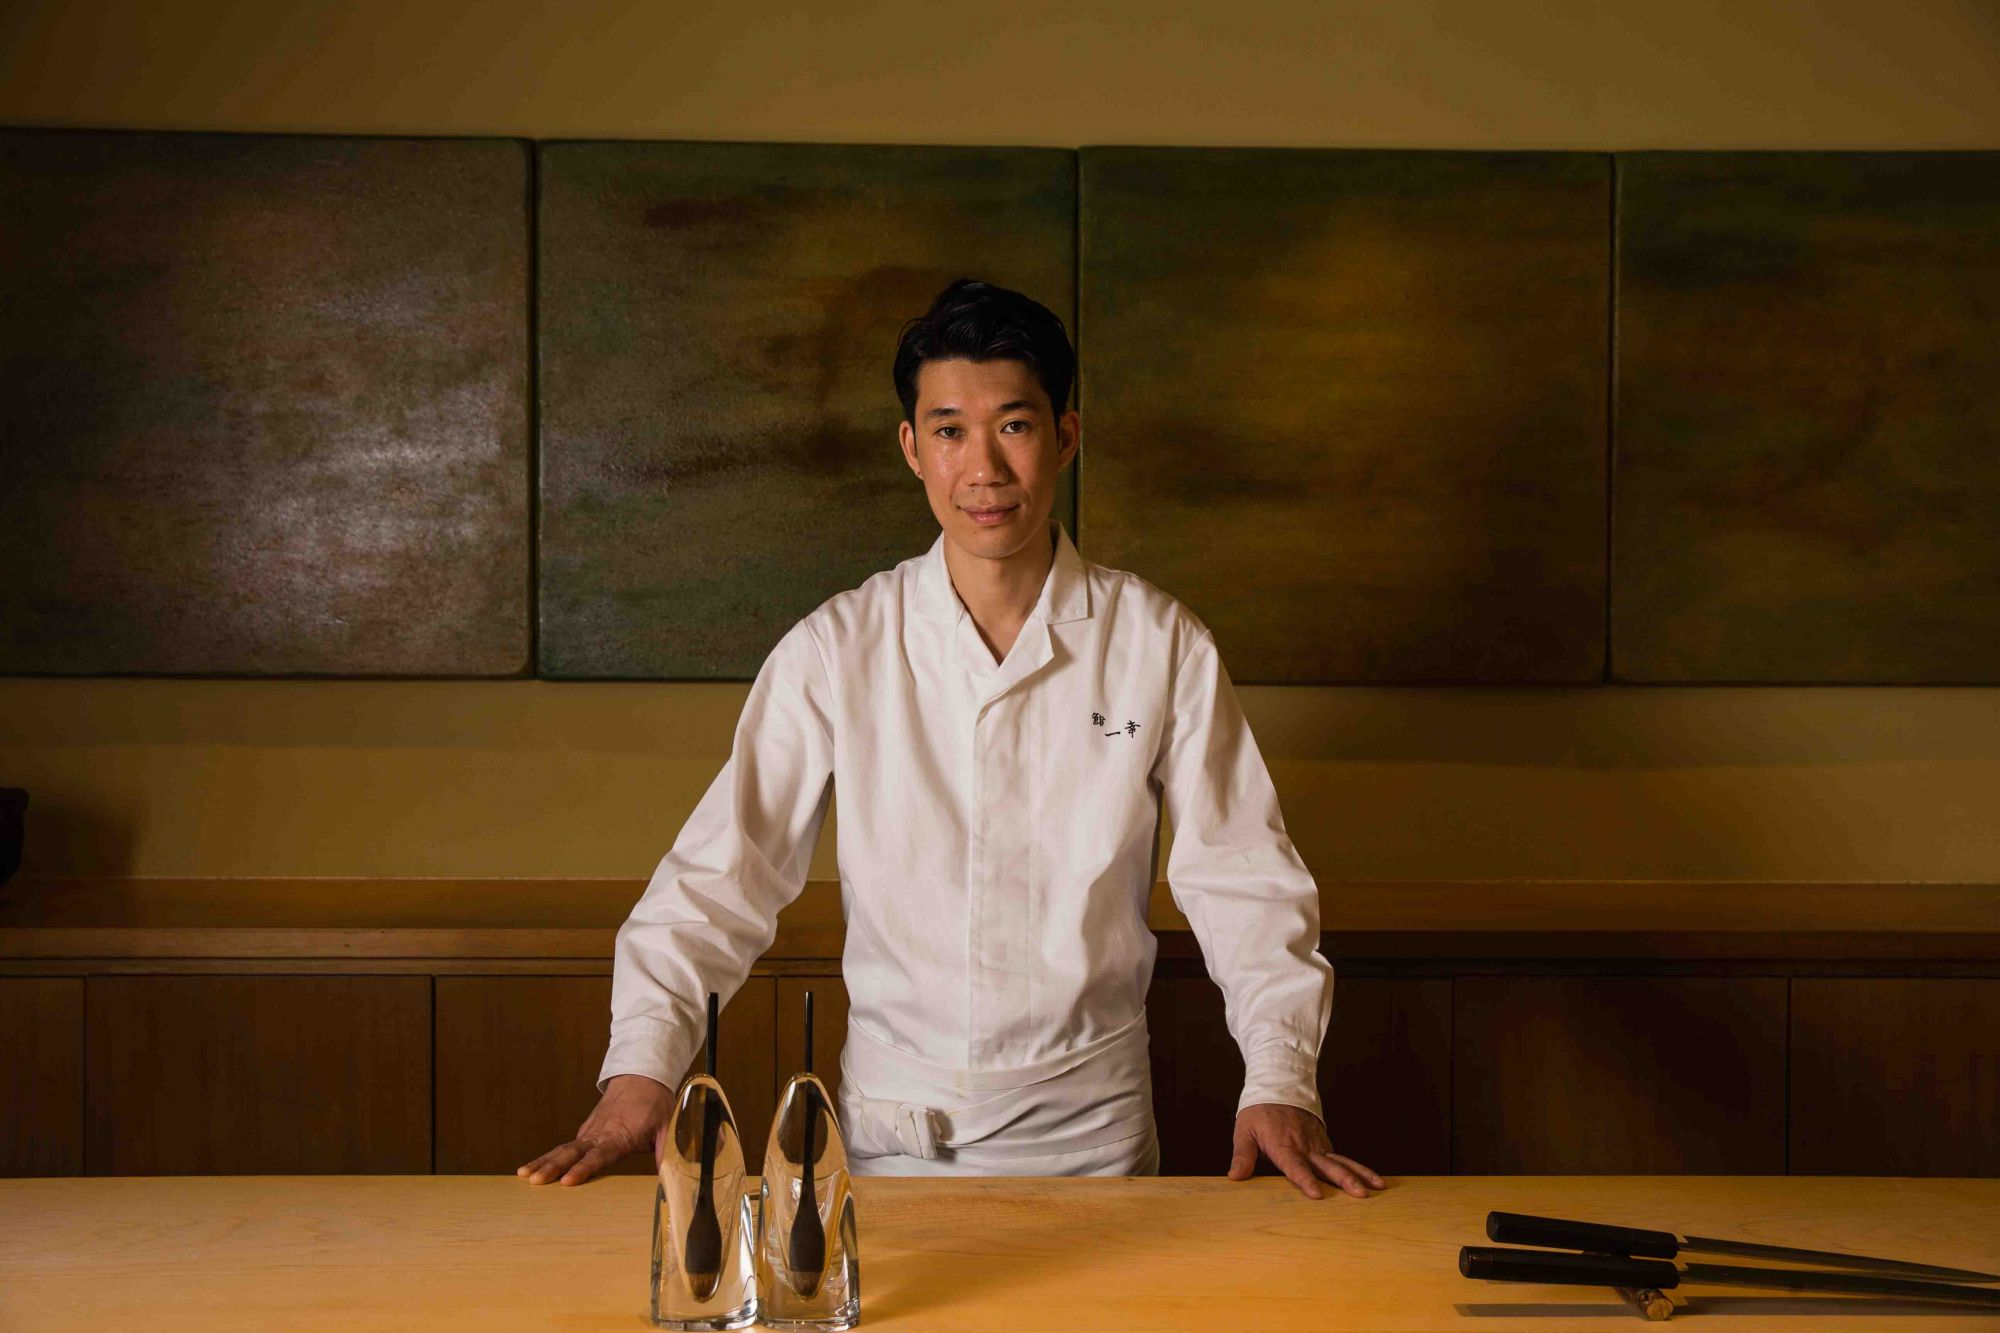 Shoukouwa Announces New Partnership With Lauded Sushi Chef Junya Kudo